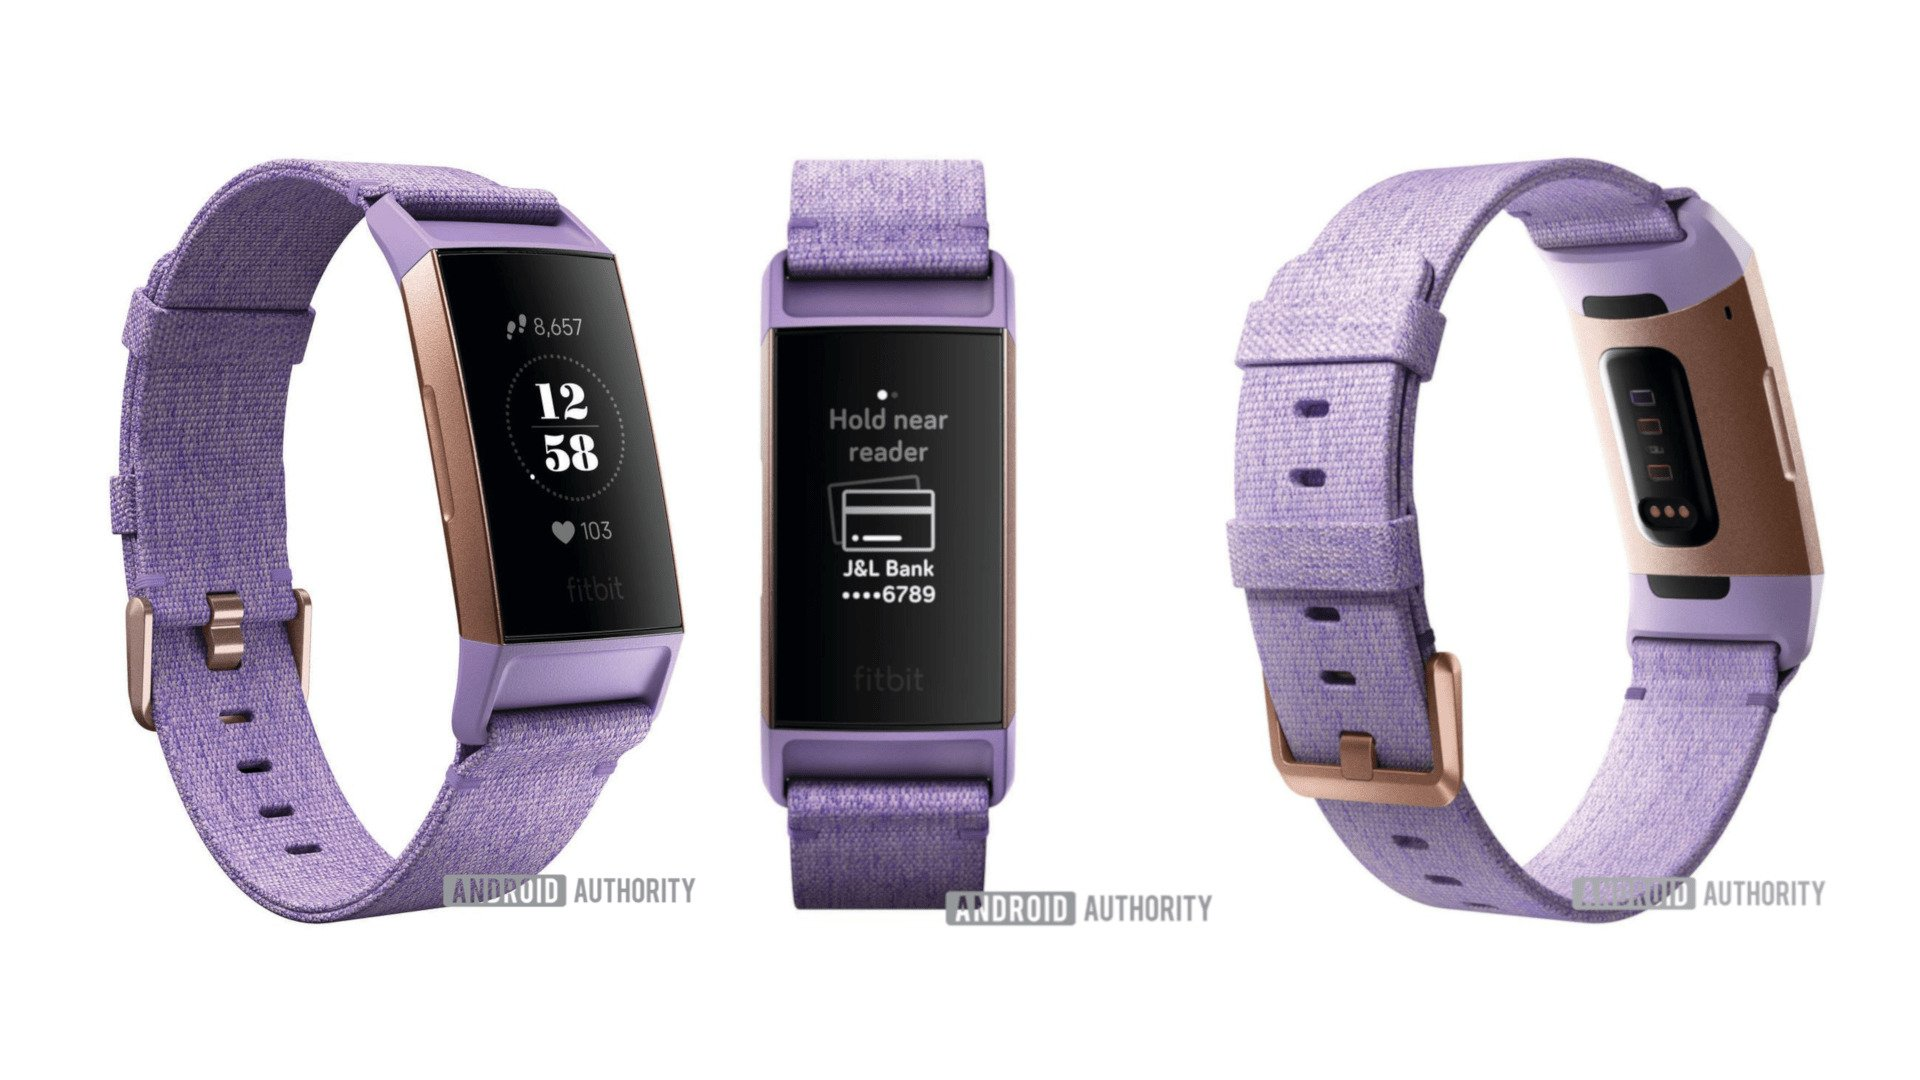 Fitbit Charge 3 specs and images leaked ahead of the launch